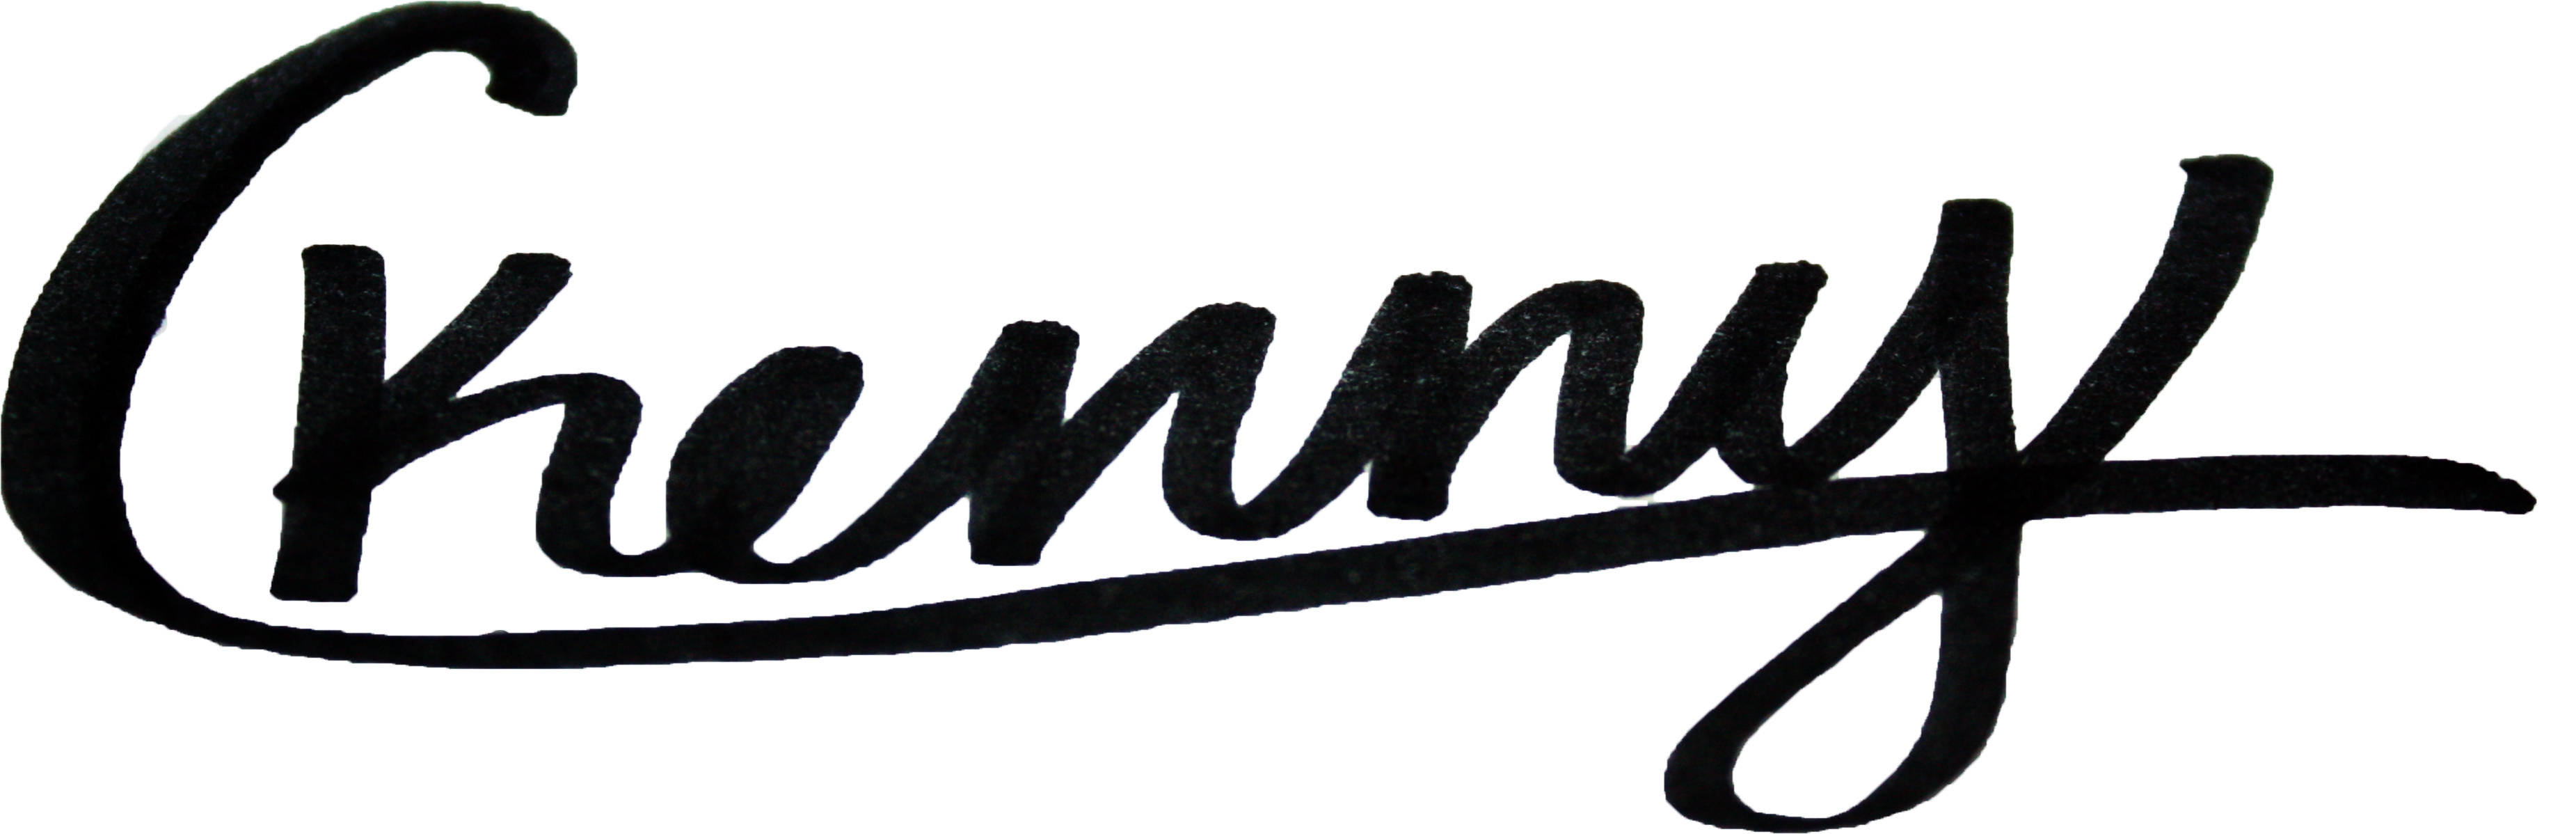 courtney porto's Signature